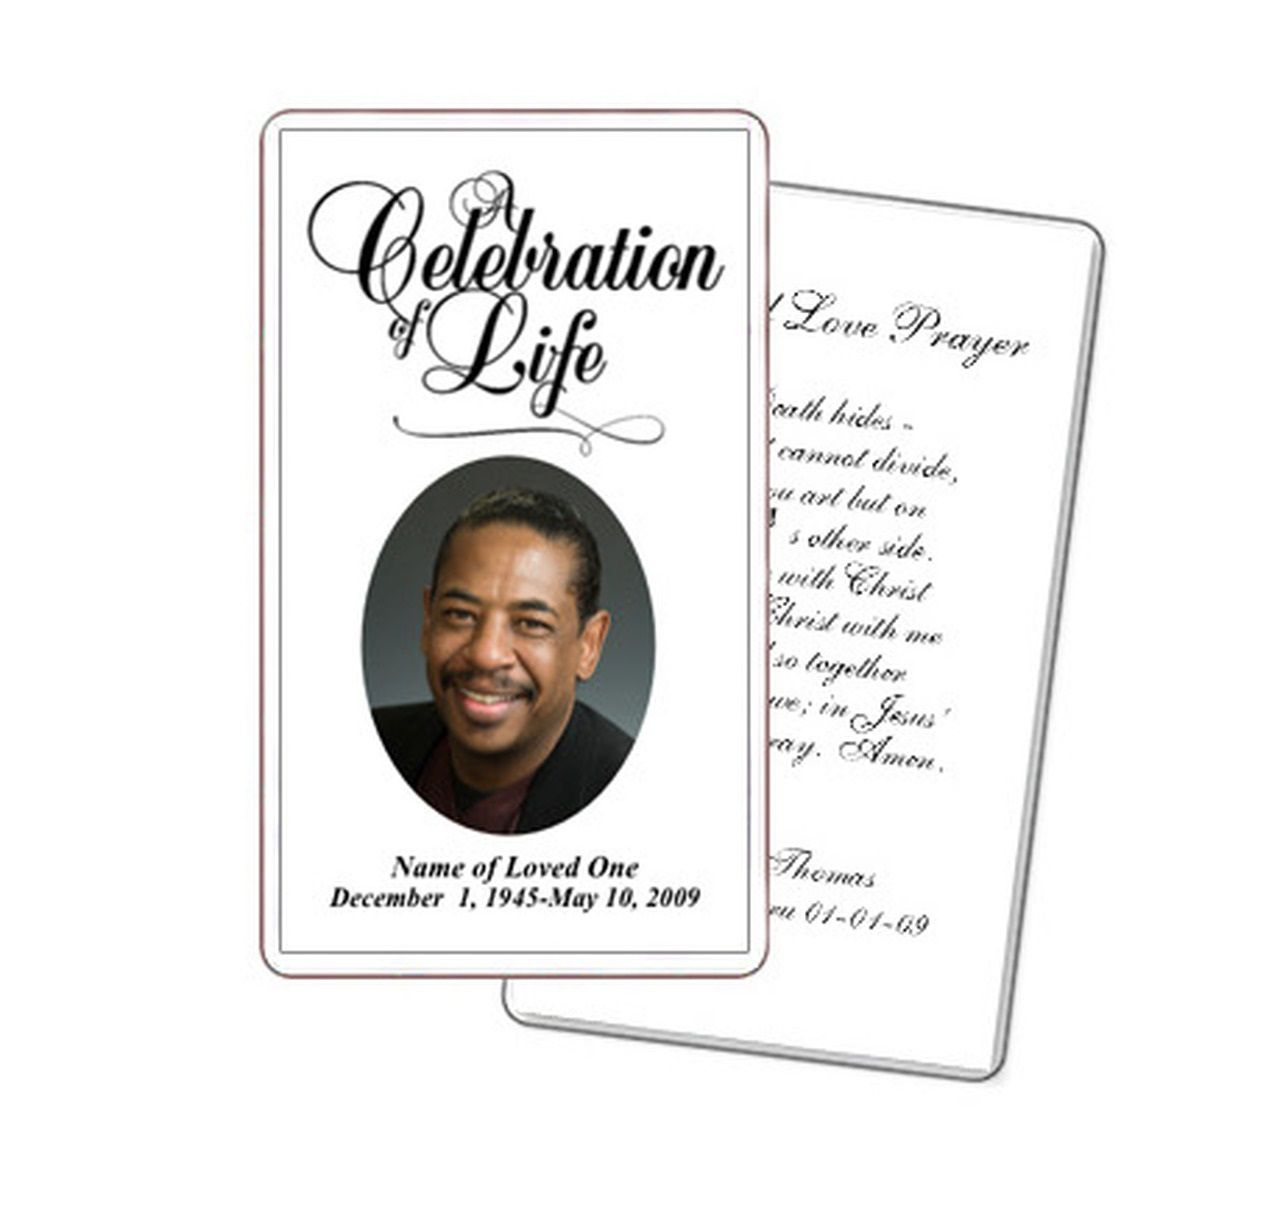 005 Remarkable Funeral Prayer Card Template Sample  Templates For Word FreeFull